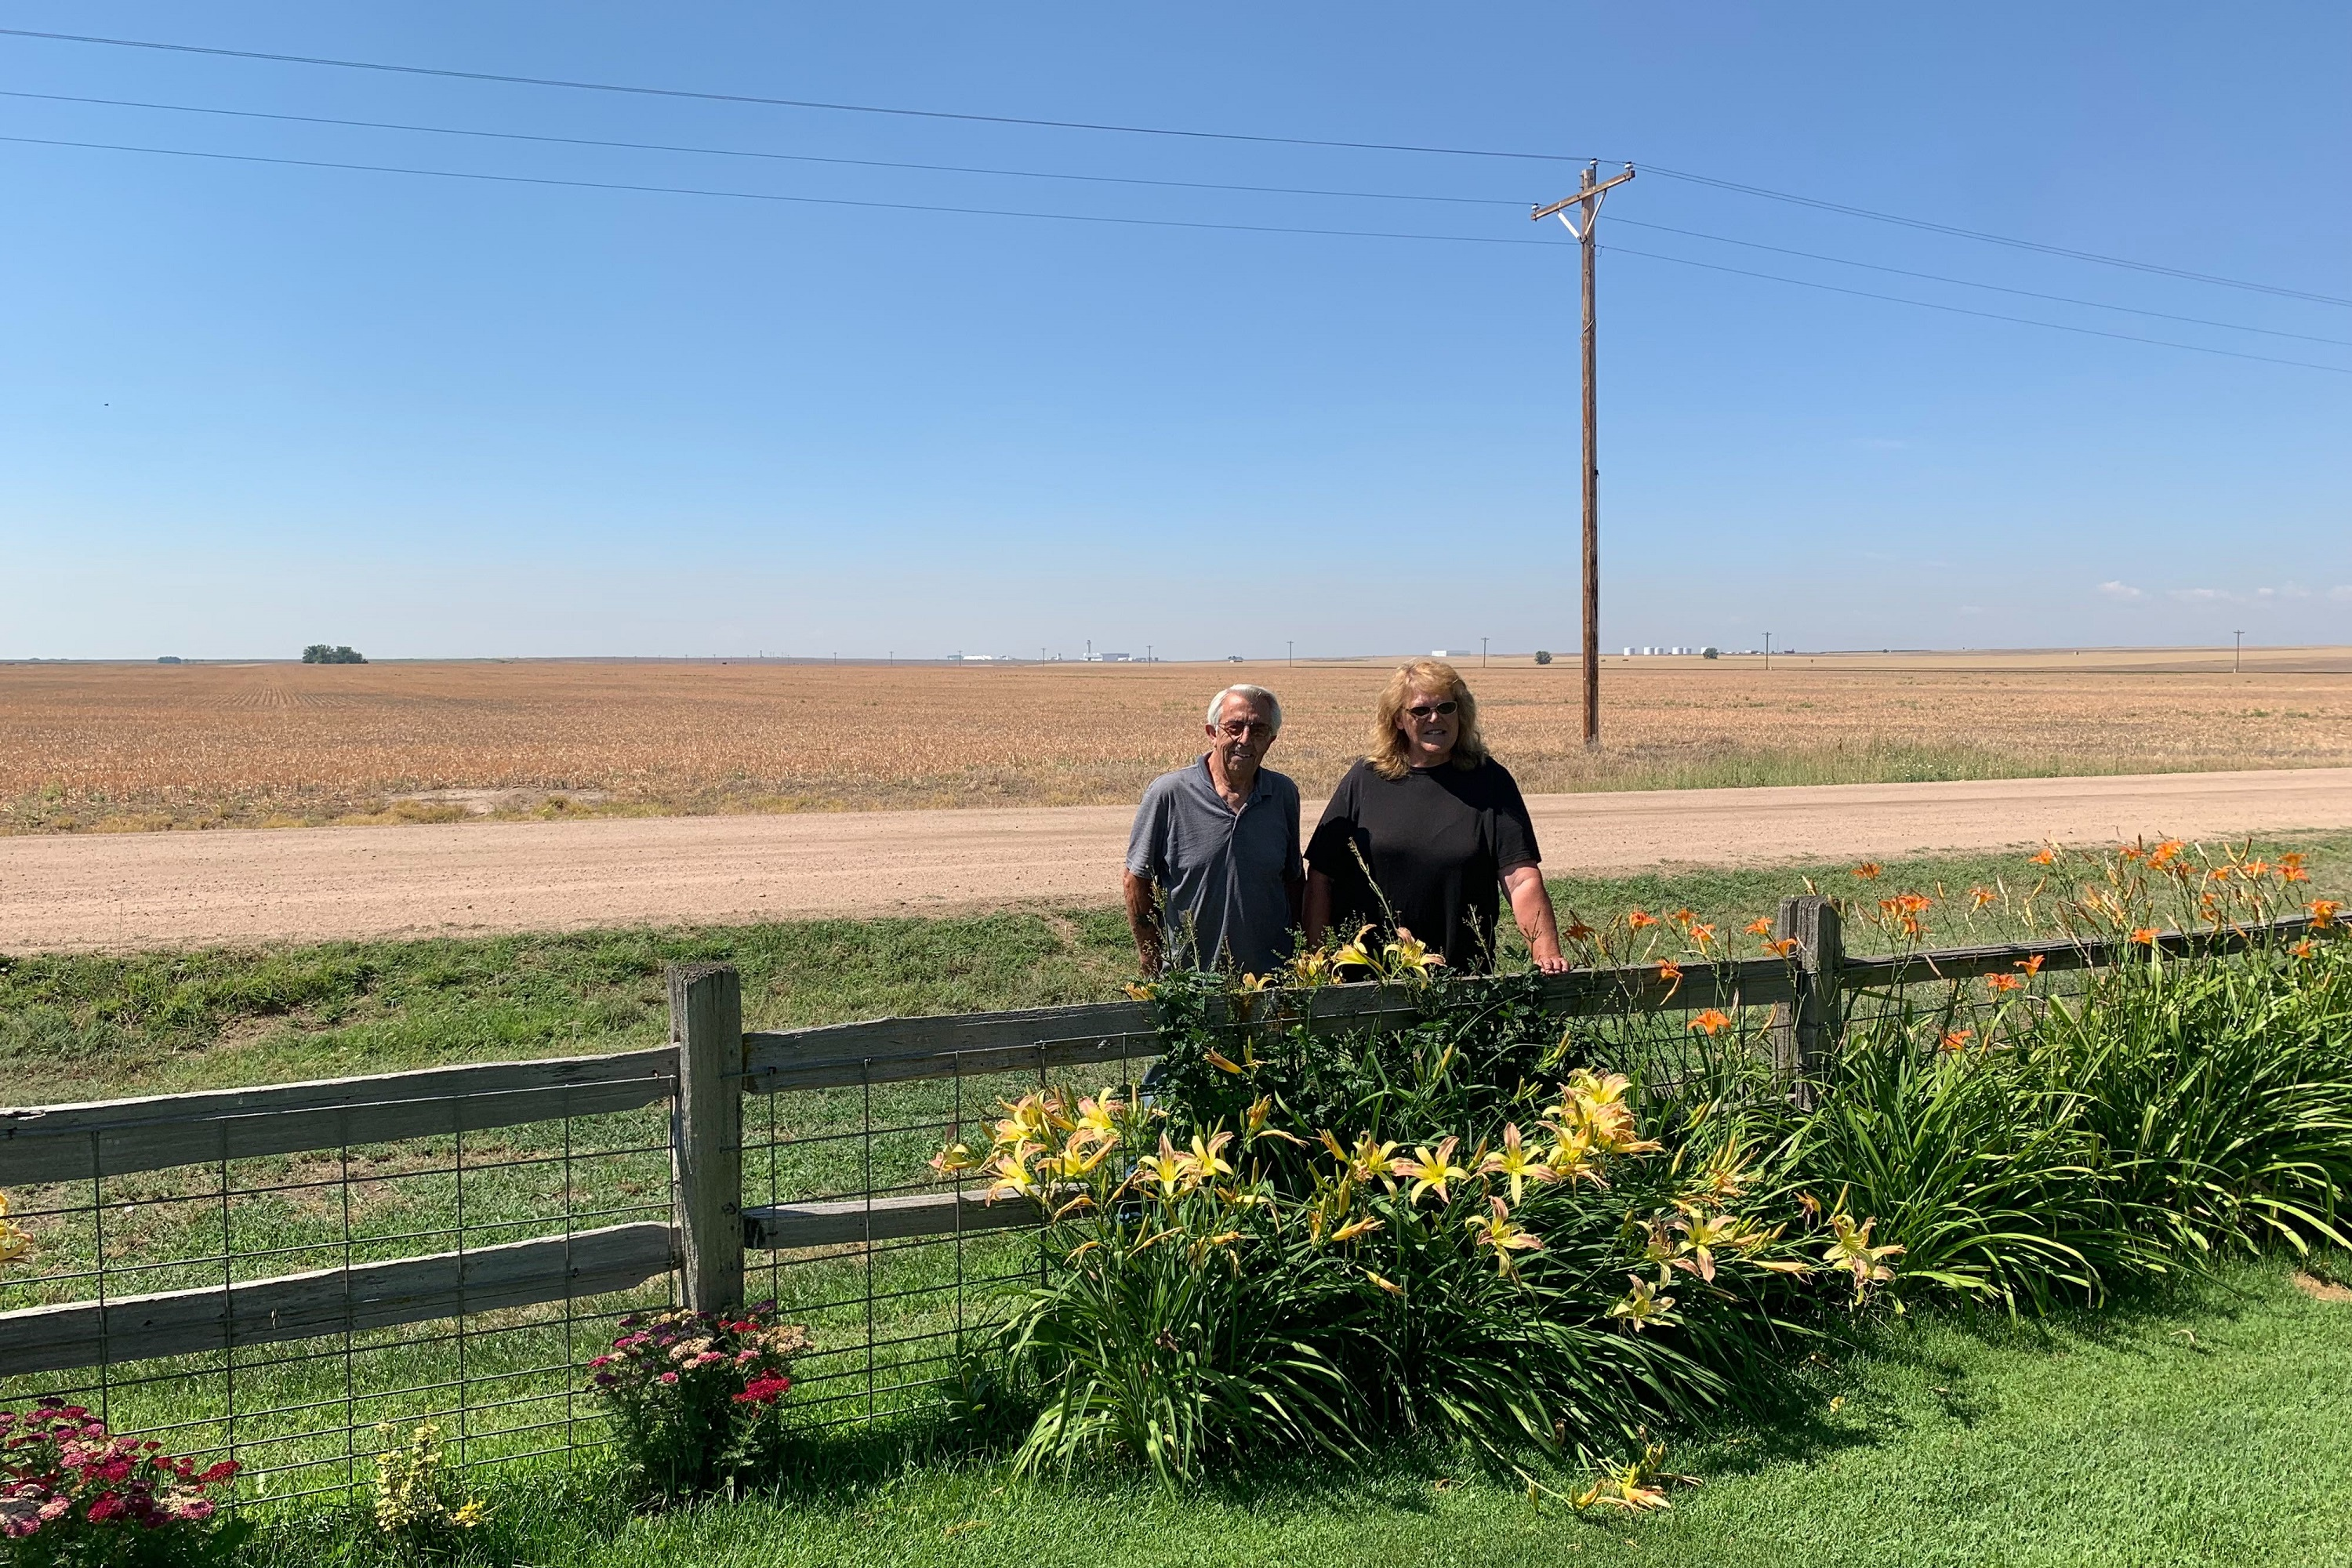 Tom and Jerilyn James stand outside their home of 35 years. The land used to be quiet and rural, but in 1995, everything changed when DIA opened.